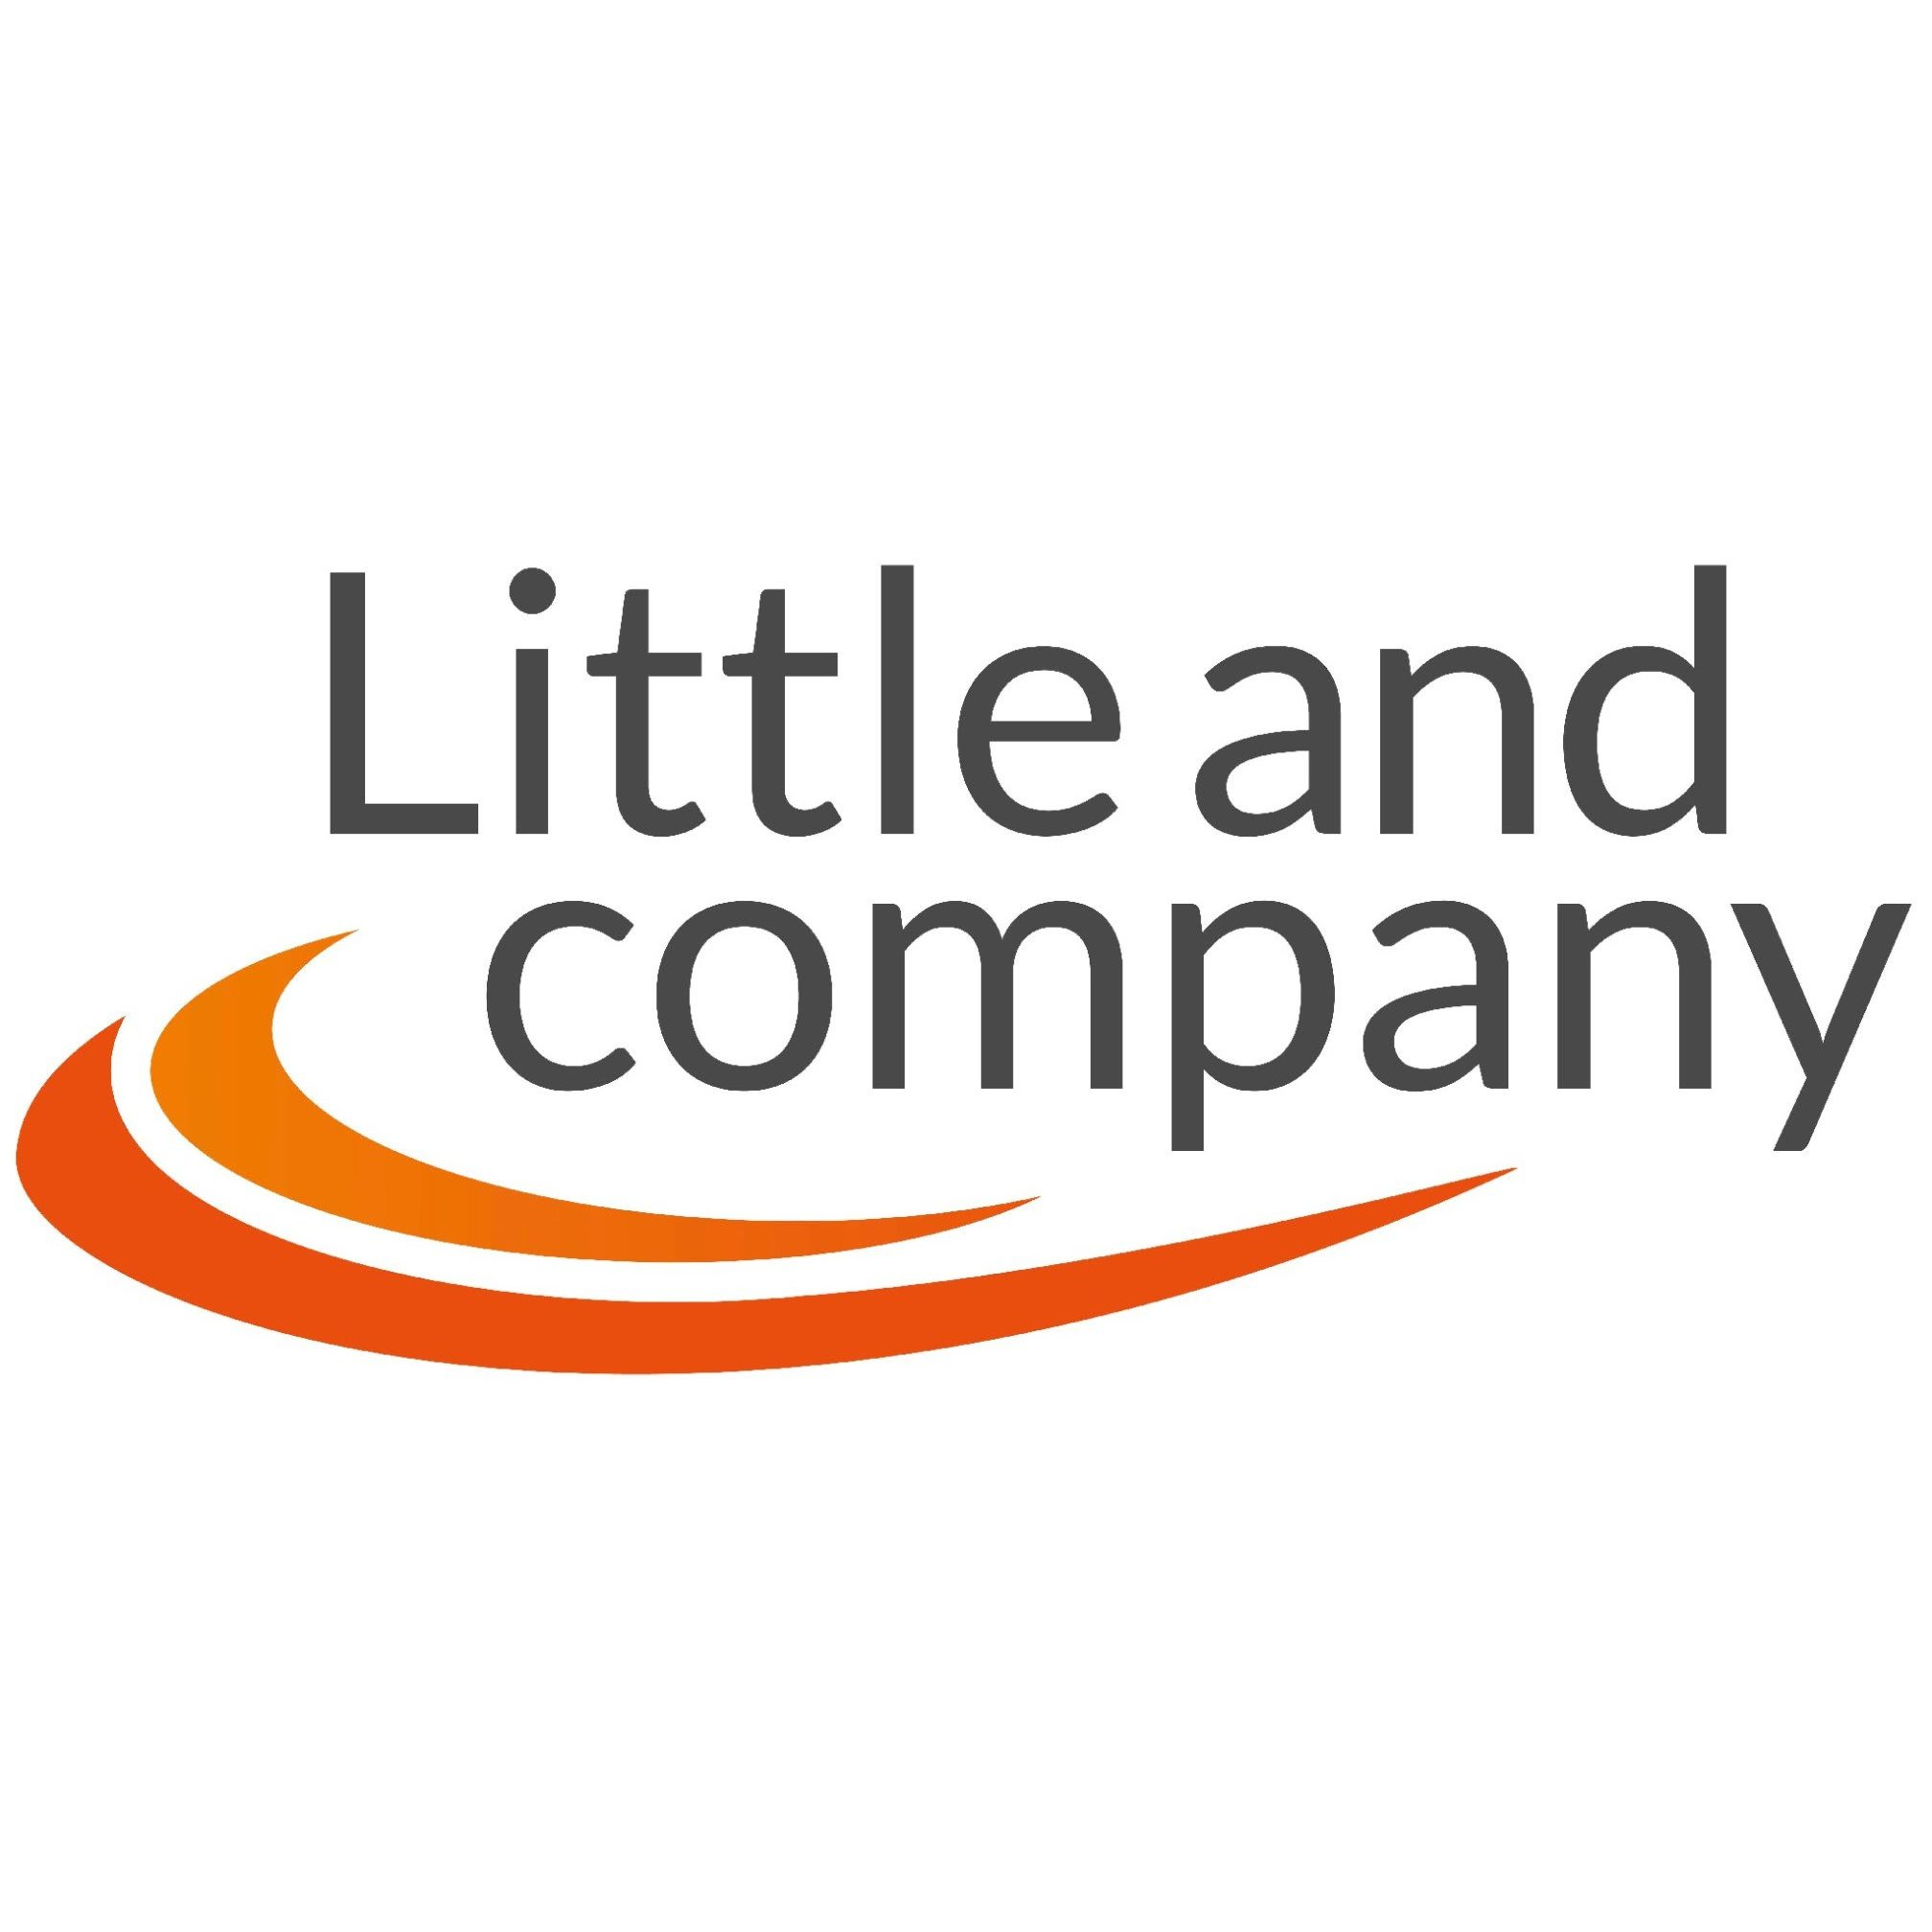 Little and company